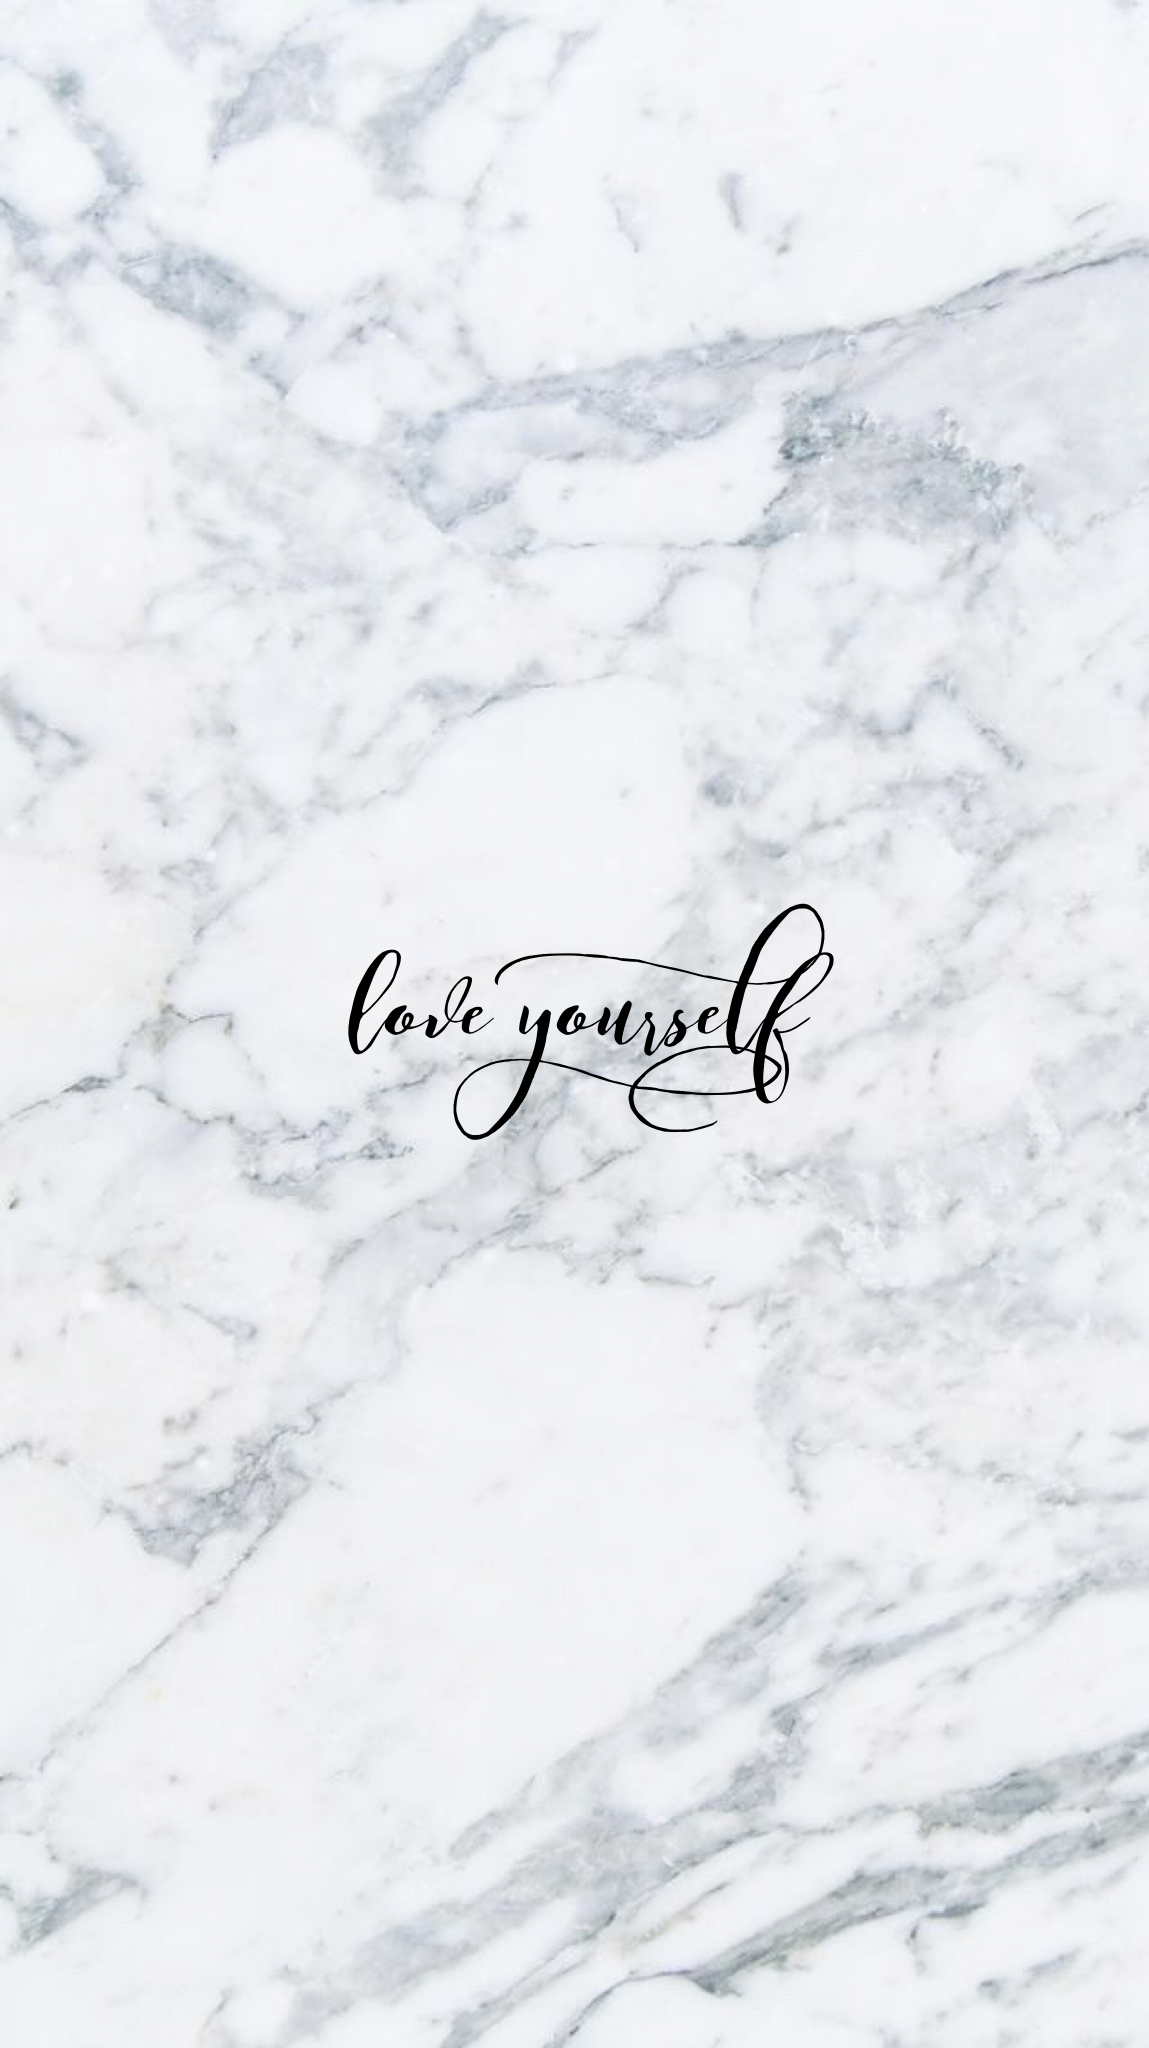 Love Yourself Wallpapers : Love Yourself iPhone Wallpaper @EvaLand Fondos de iphone ...